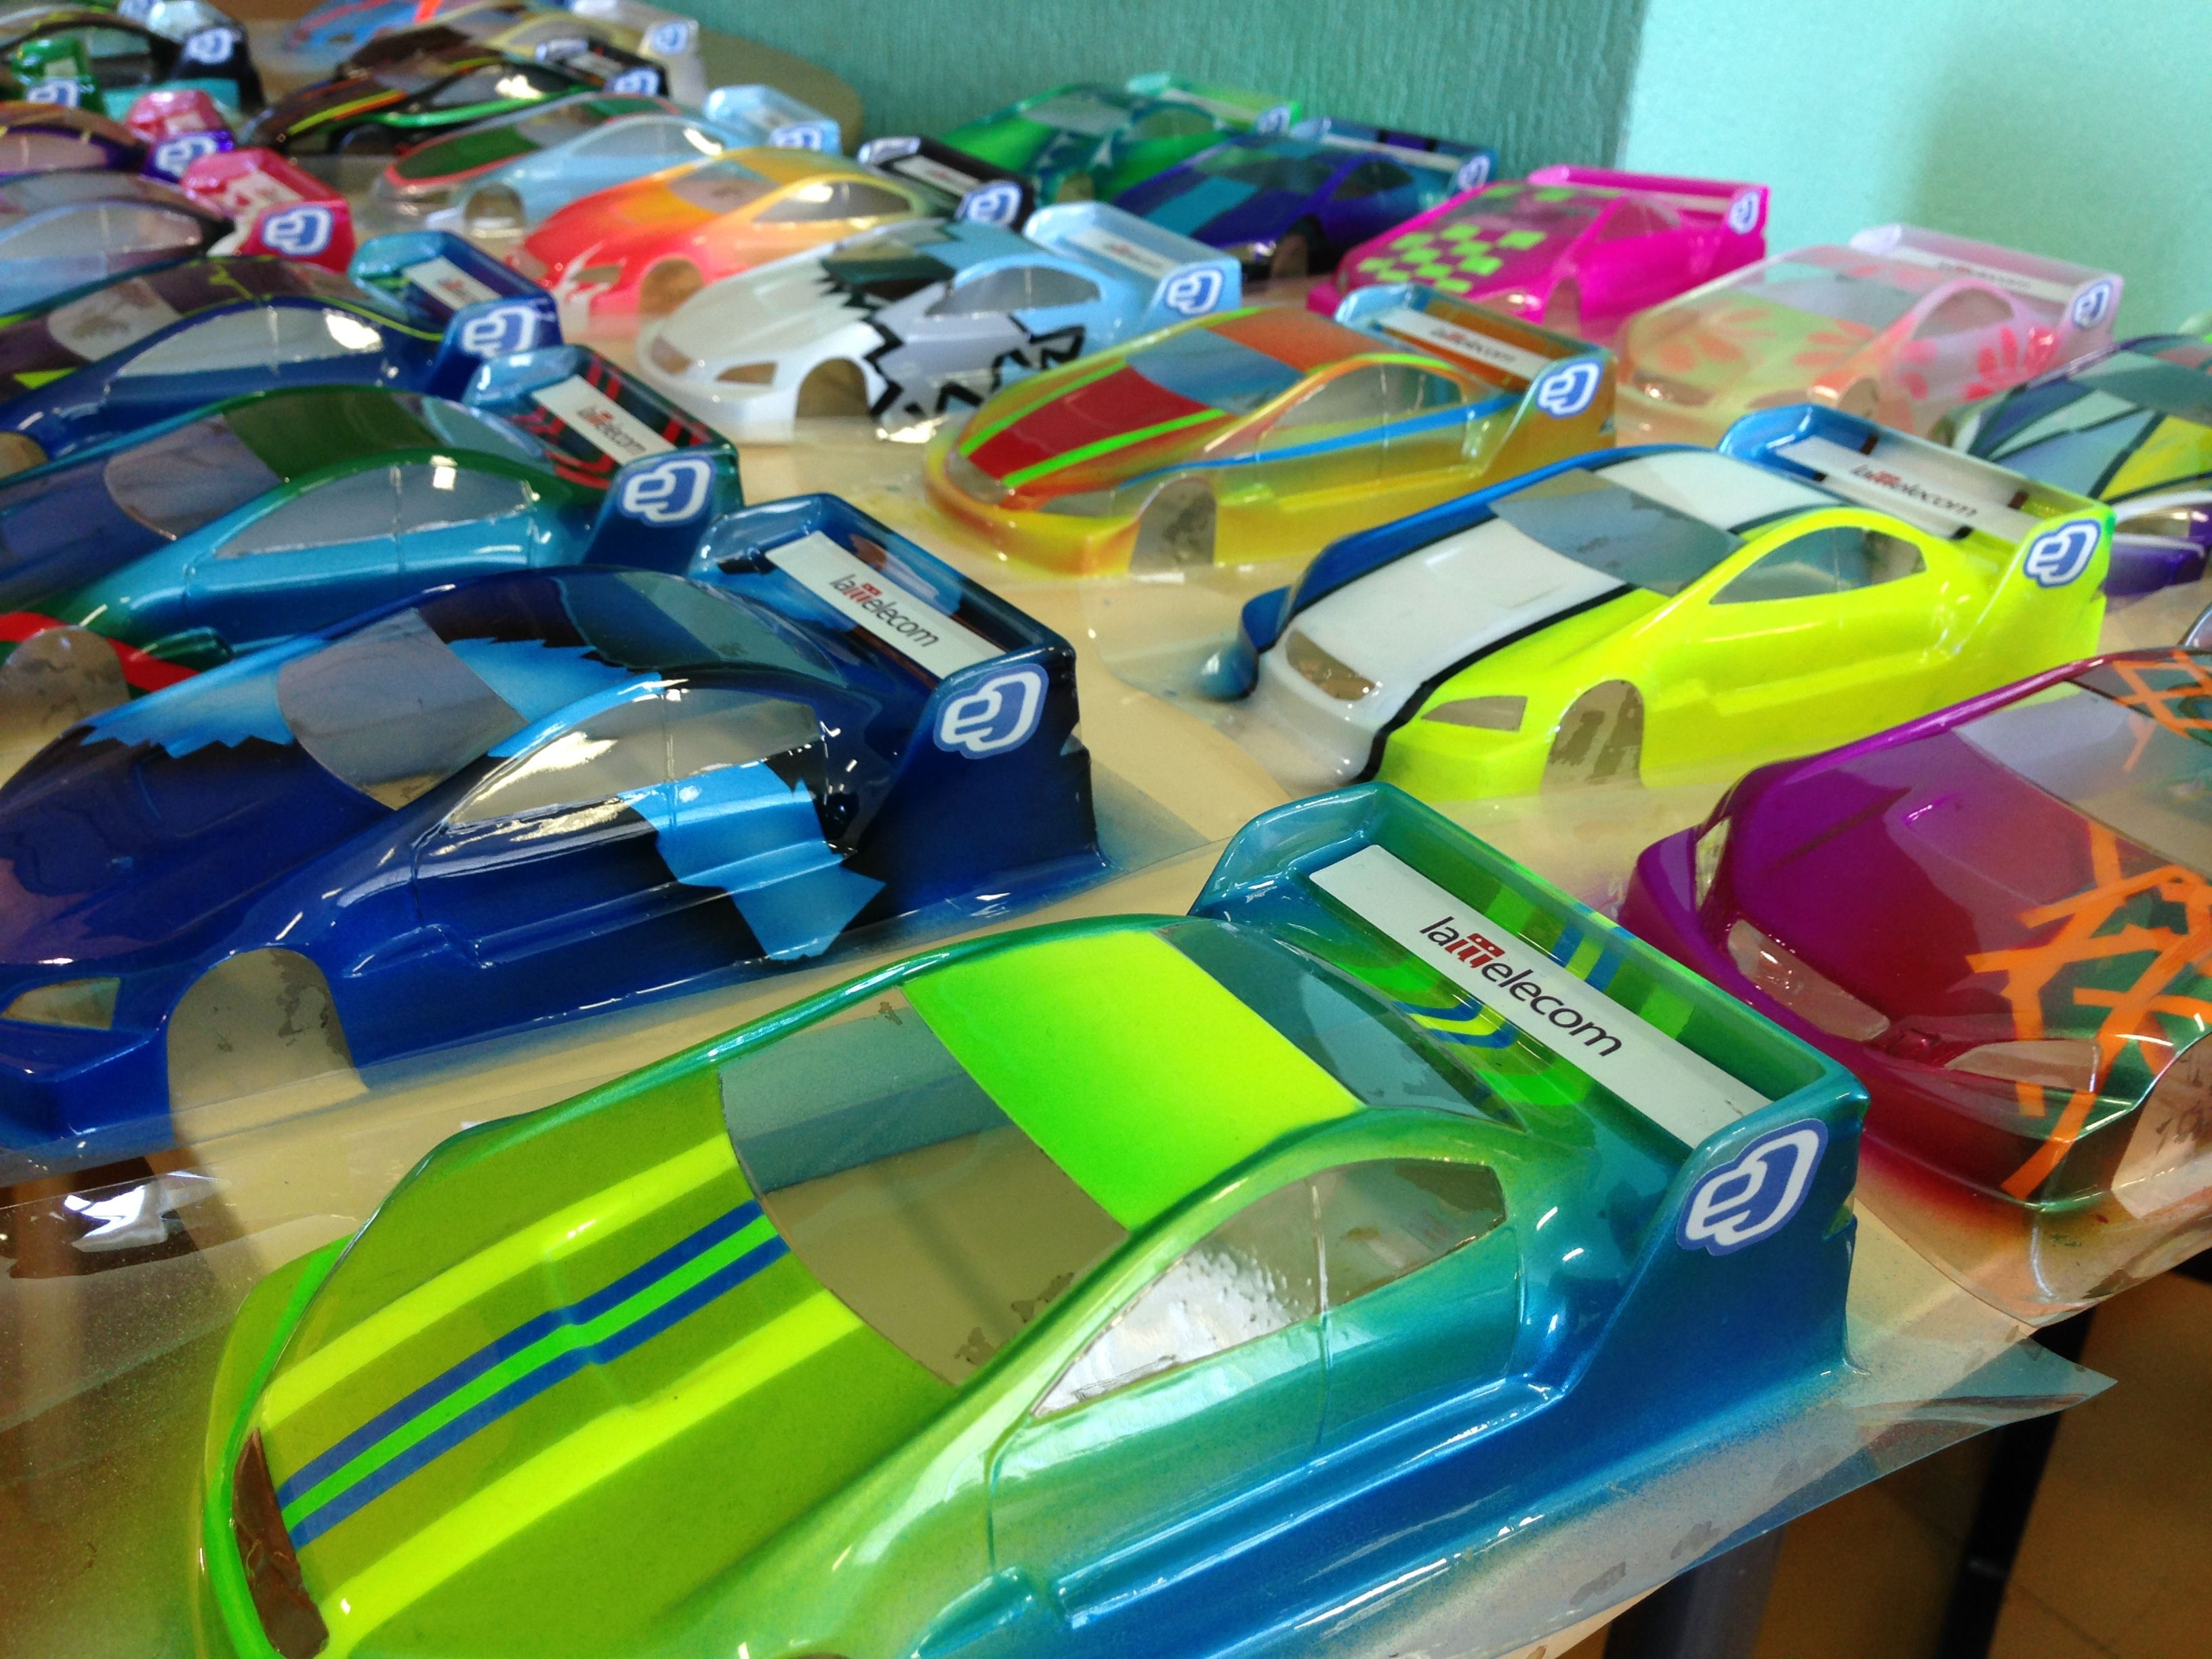 Production Car Bodies For 2014 Isra Slot Worlds In October Limbazi Latvia Slot Car Racing Slot Cars Toy Car